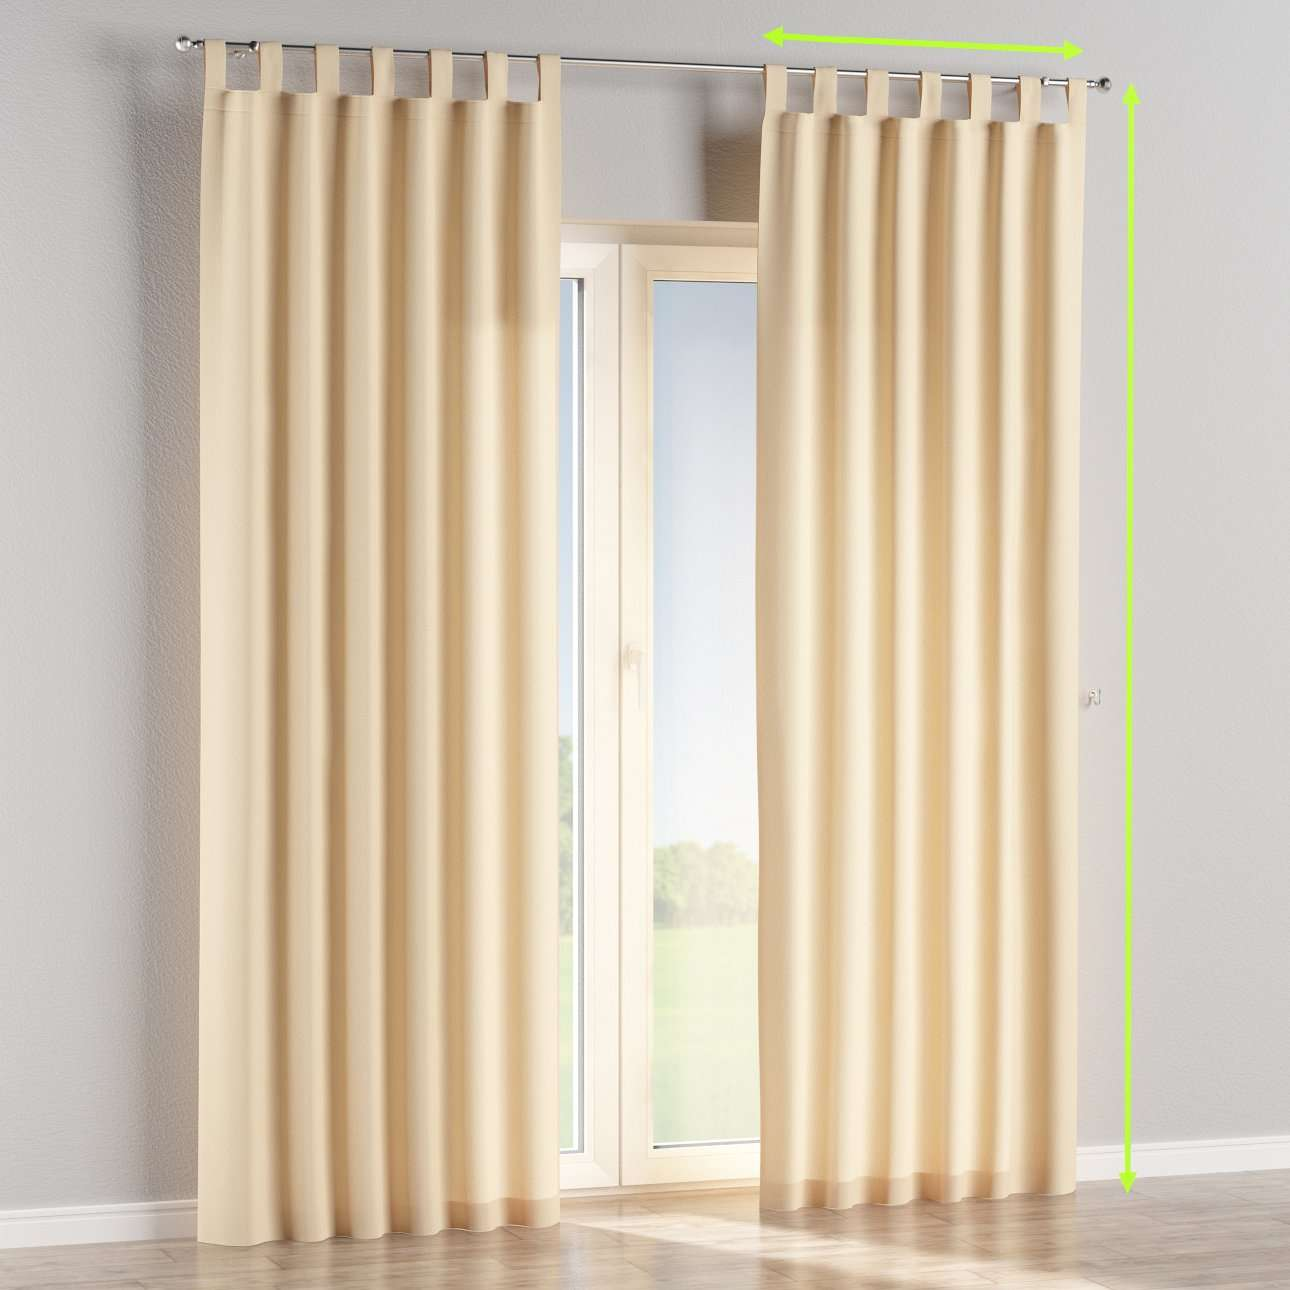 Tab top lined curtains in collection Chenille, fabric: 702-22